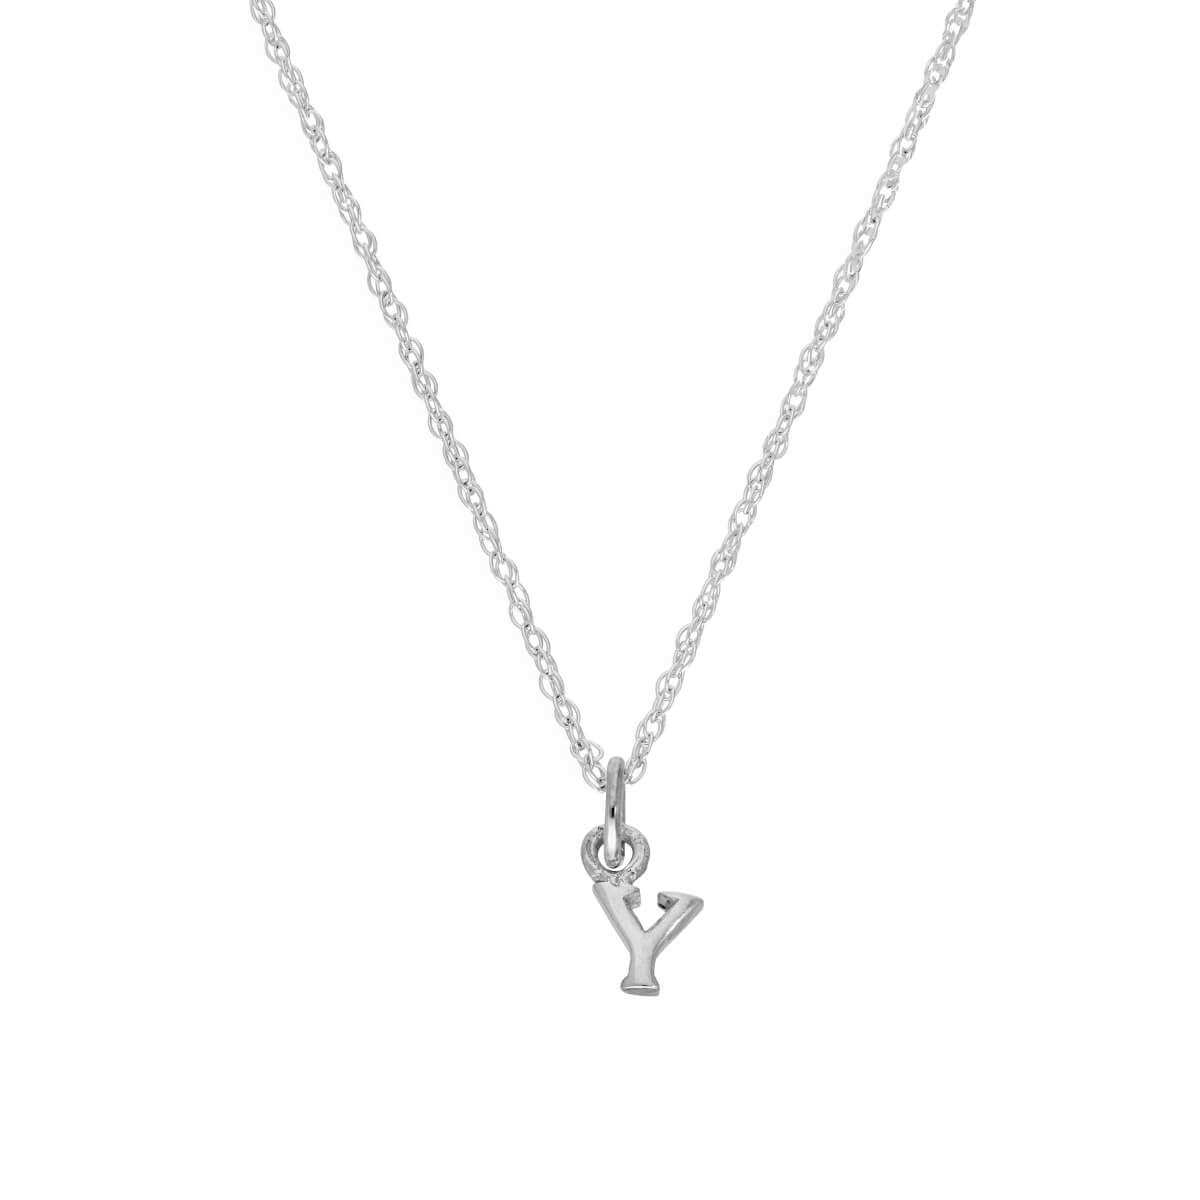 Tiny Sterling Silver Alphabet Letter Y Pendant Necklace 14 - 22 Inches